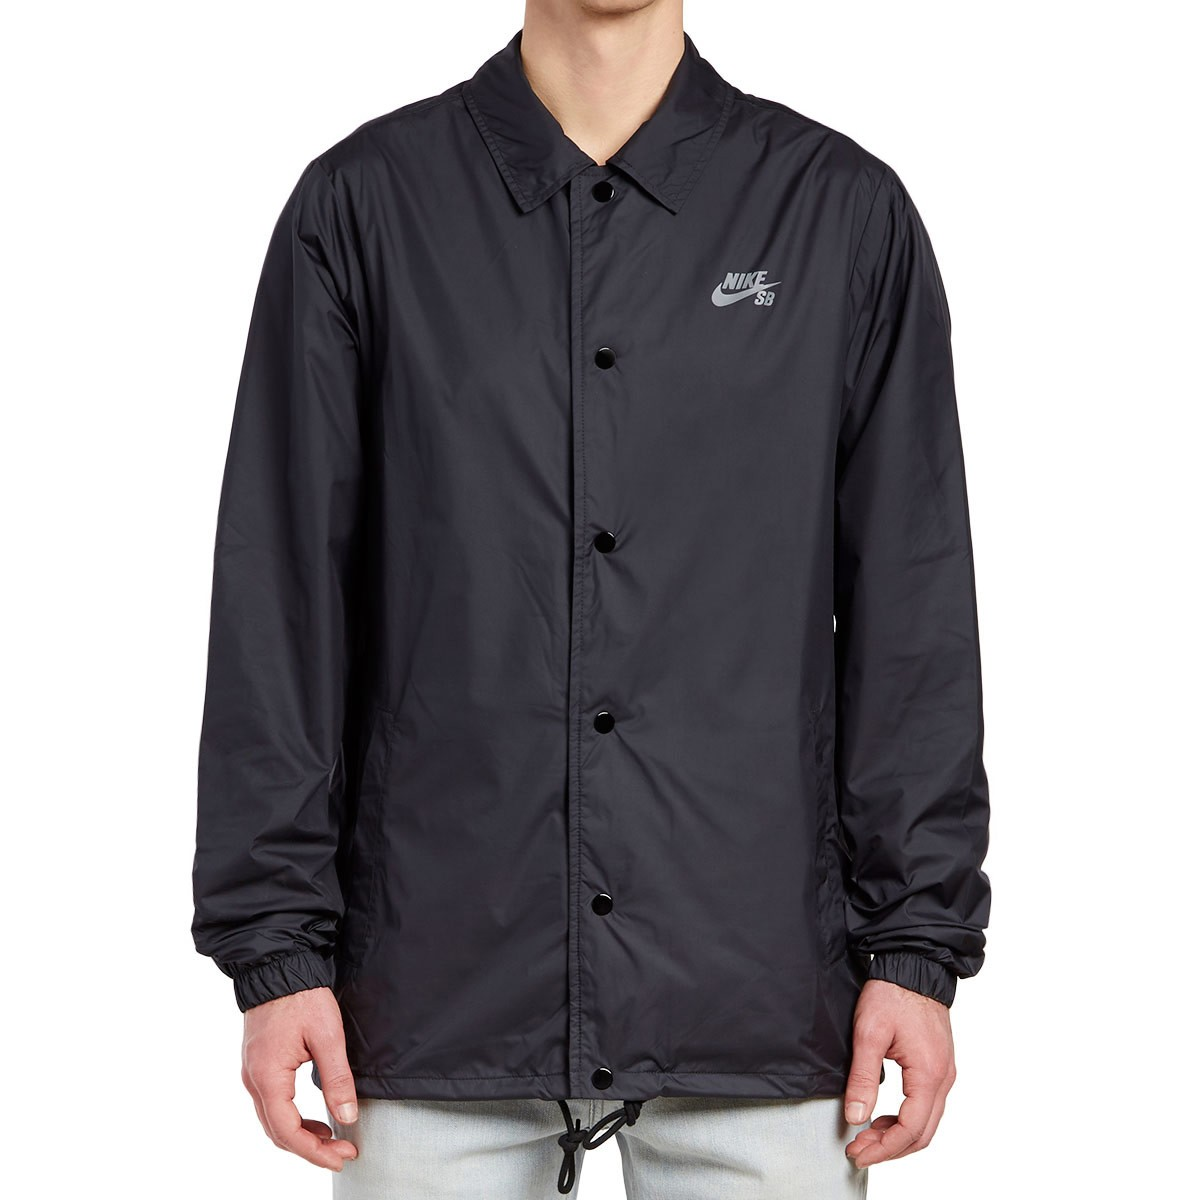 8116a8507fc2 nike-sb-shield-coaches-jacket-black-cool-grey-1.1506669018.jpg